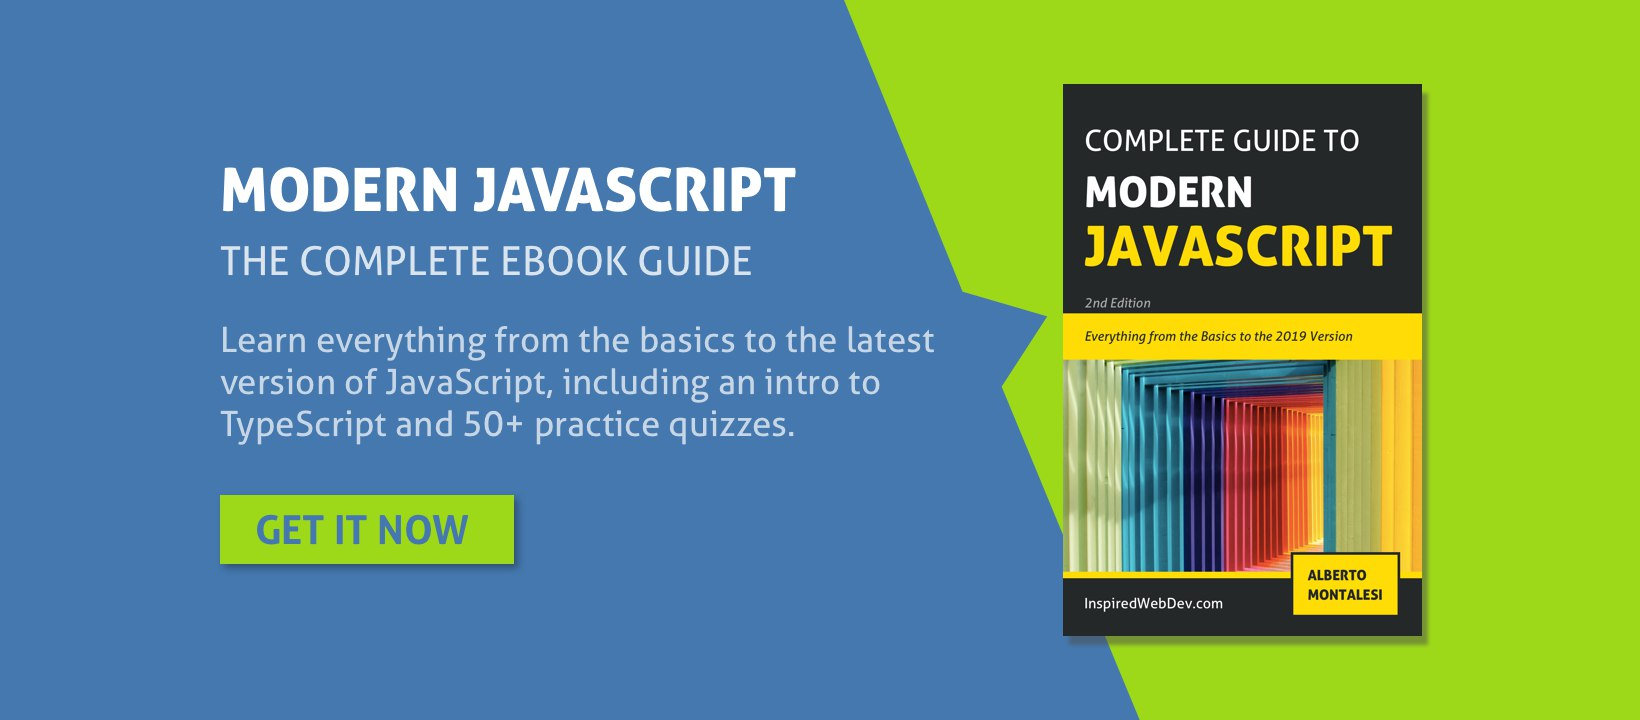 complete guide to modern javascript banner